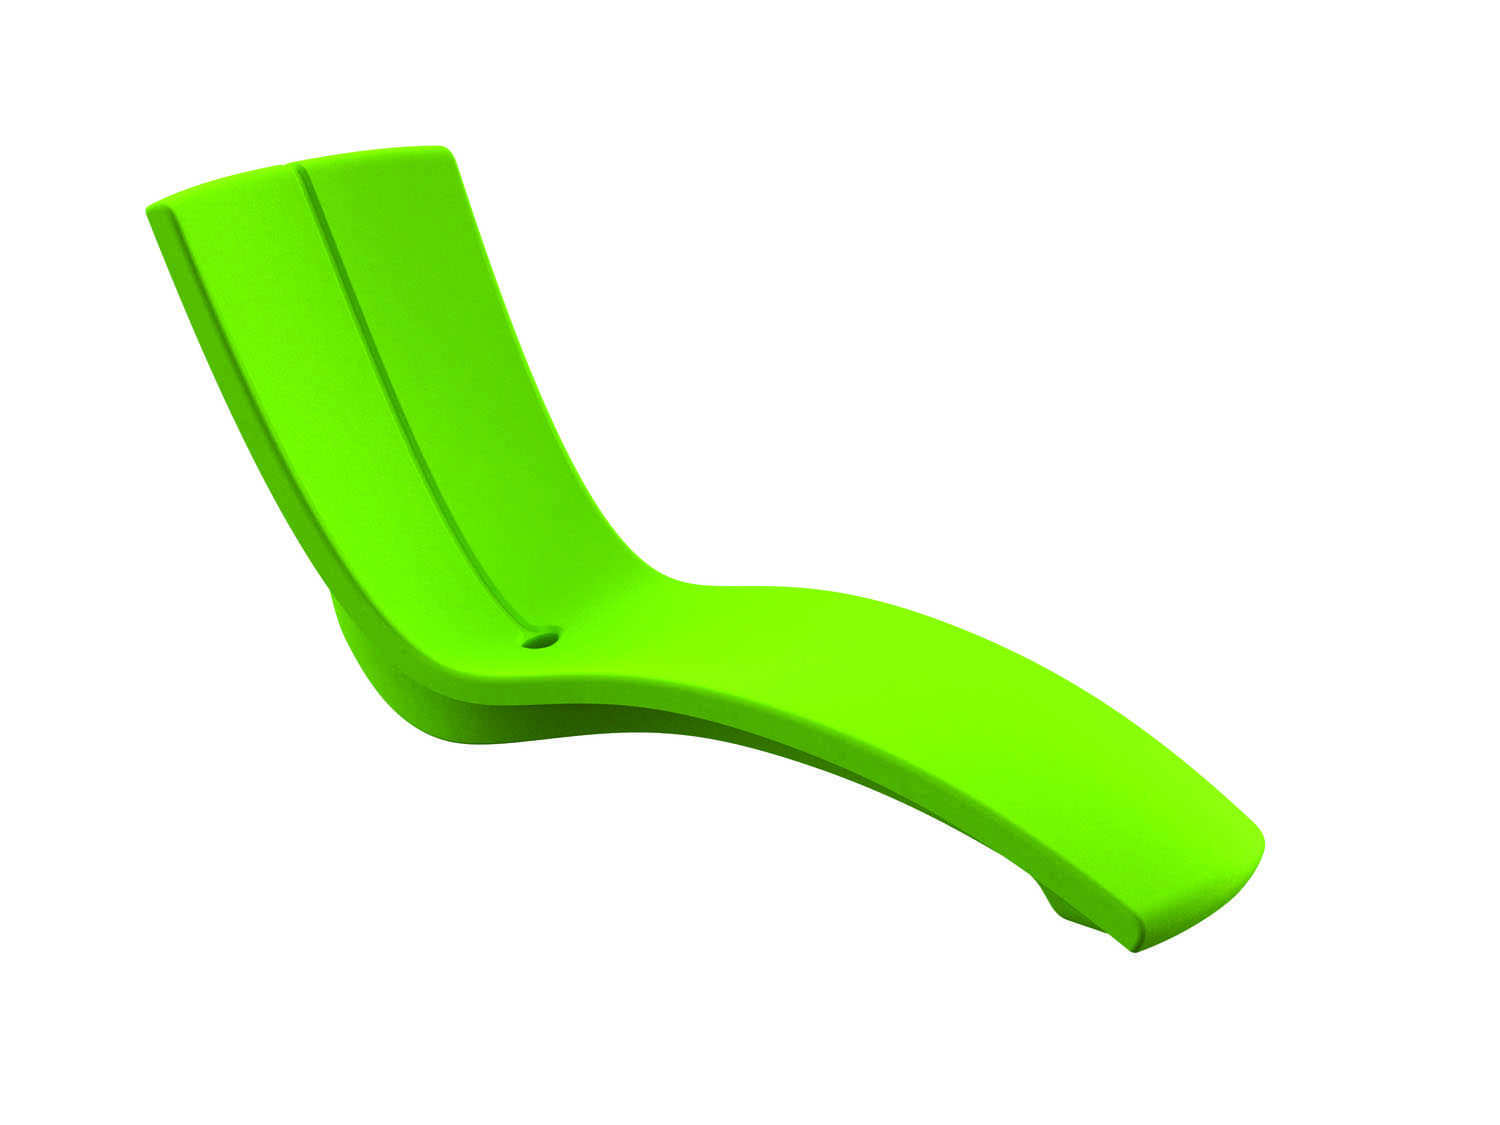 Plastic Chaise Lounge Chairs Cheap Tropitone Curve Recycled Plastic Rotoform3 Chaise Lounge